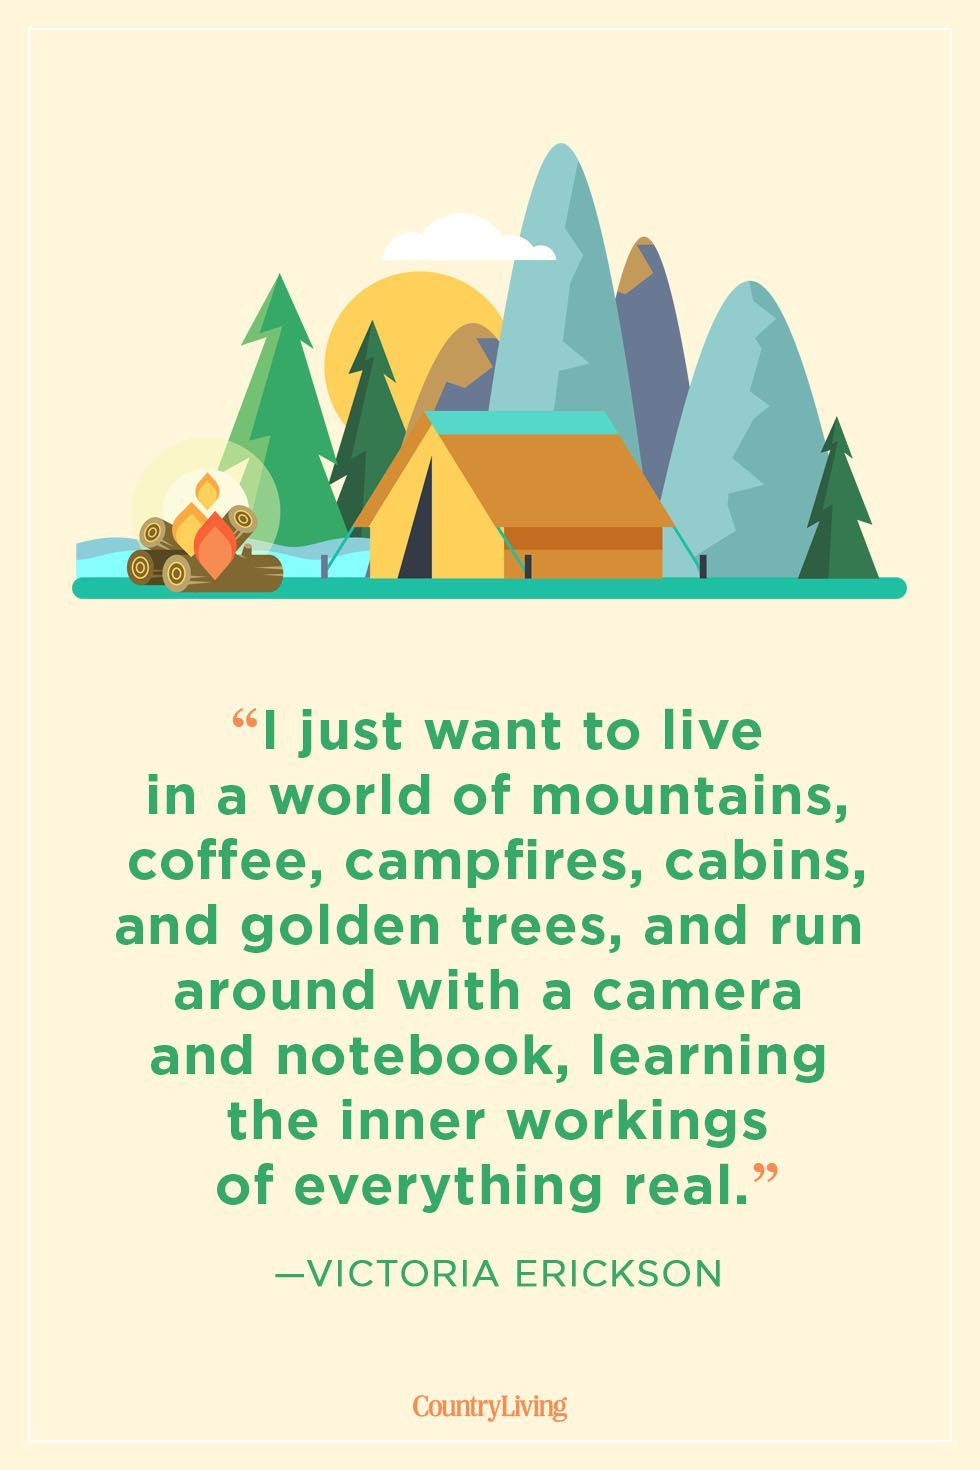 39 Camping Quotes That'll Get You Pumped for Your Next